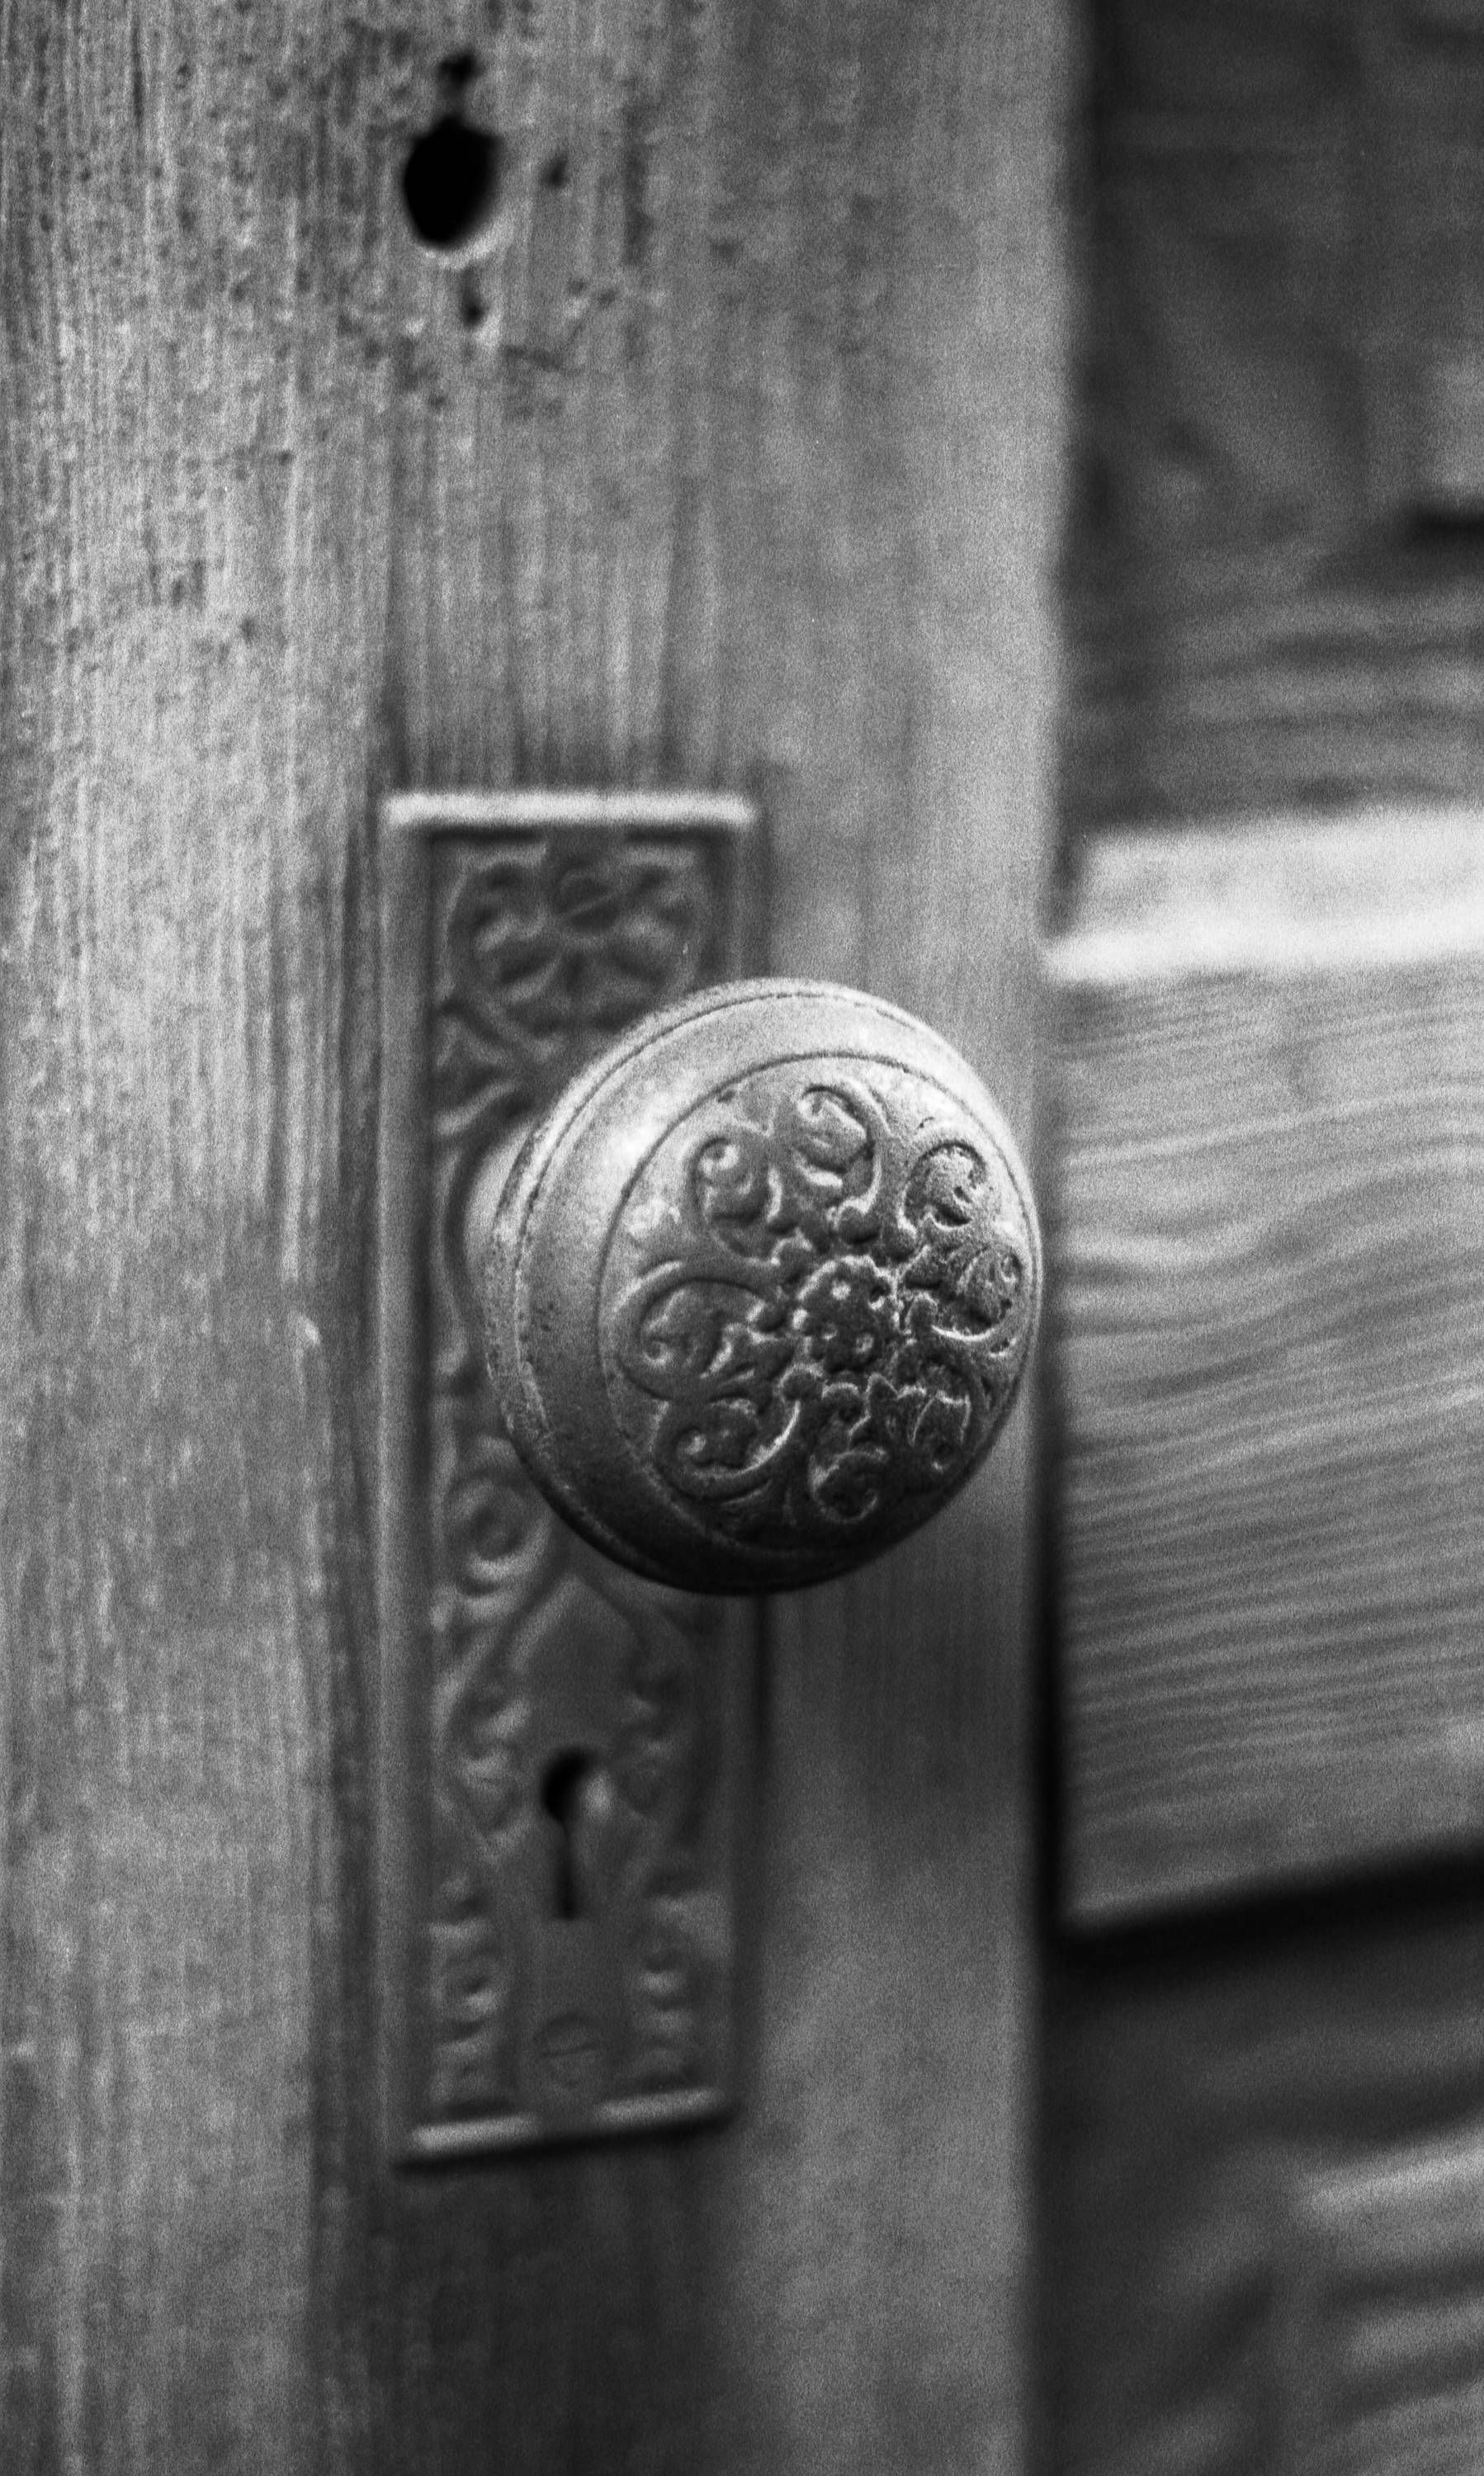 Antique door black and white photography minimalist decor minimalist home decor minimalist interior